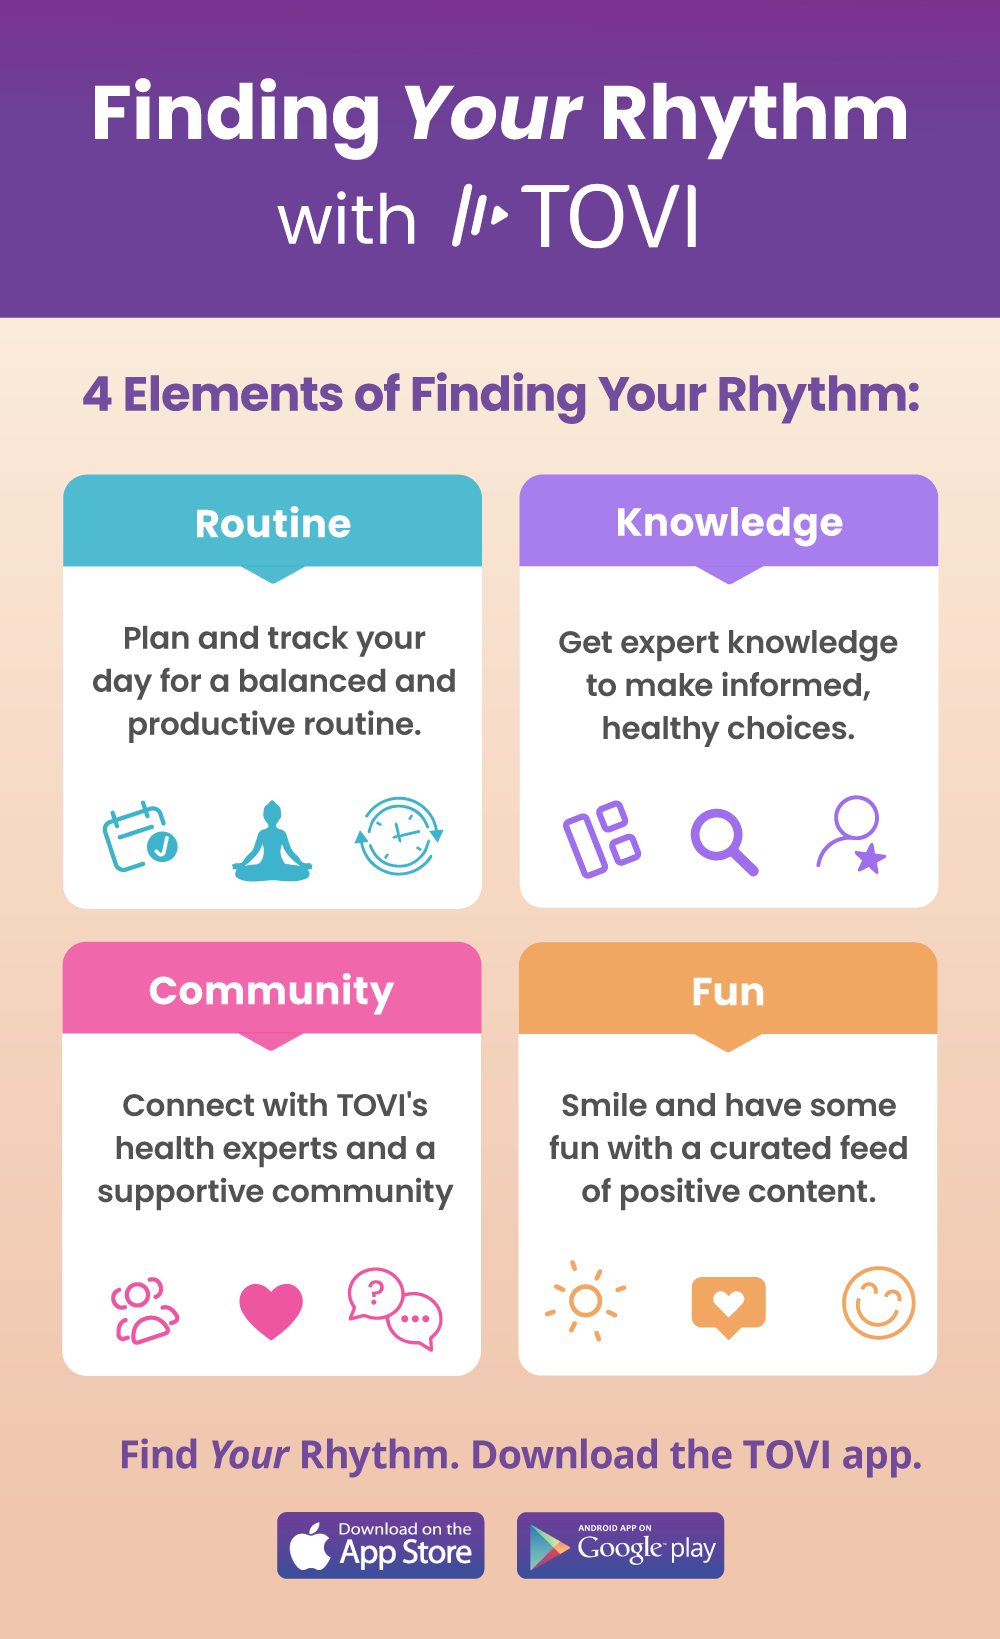 Infographic explaining how to find your rhythm with TOVI